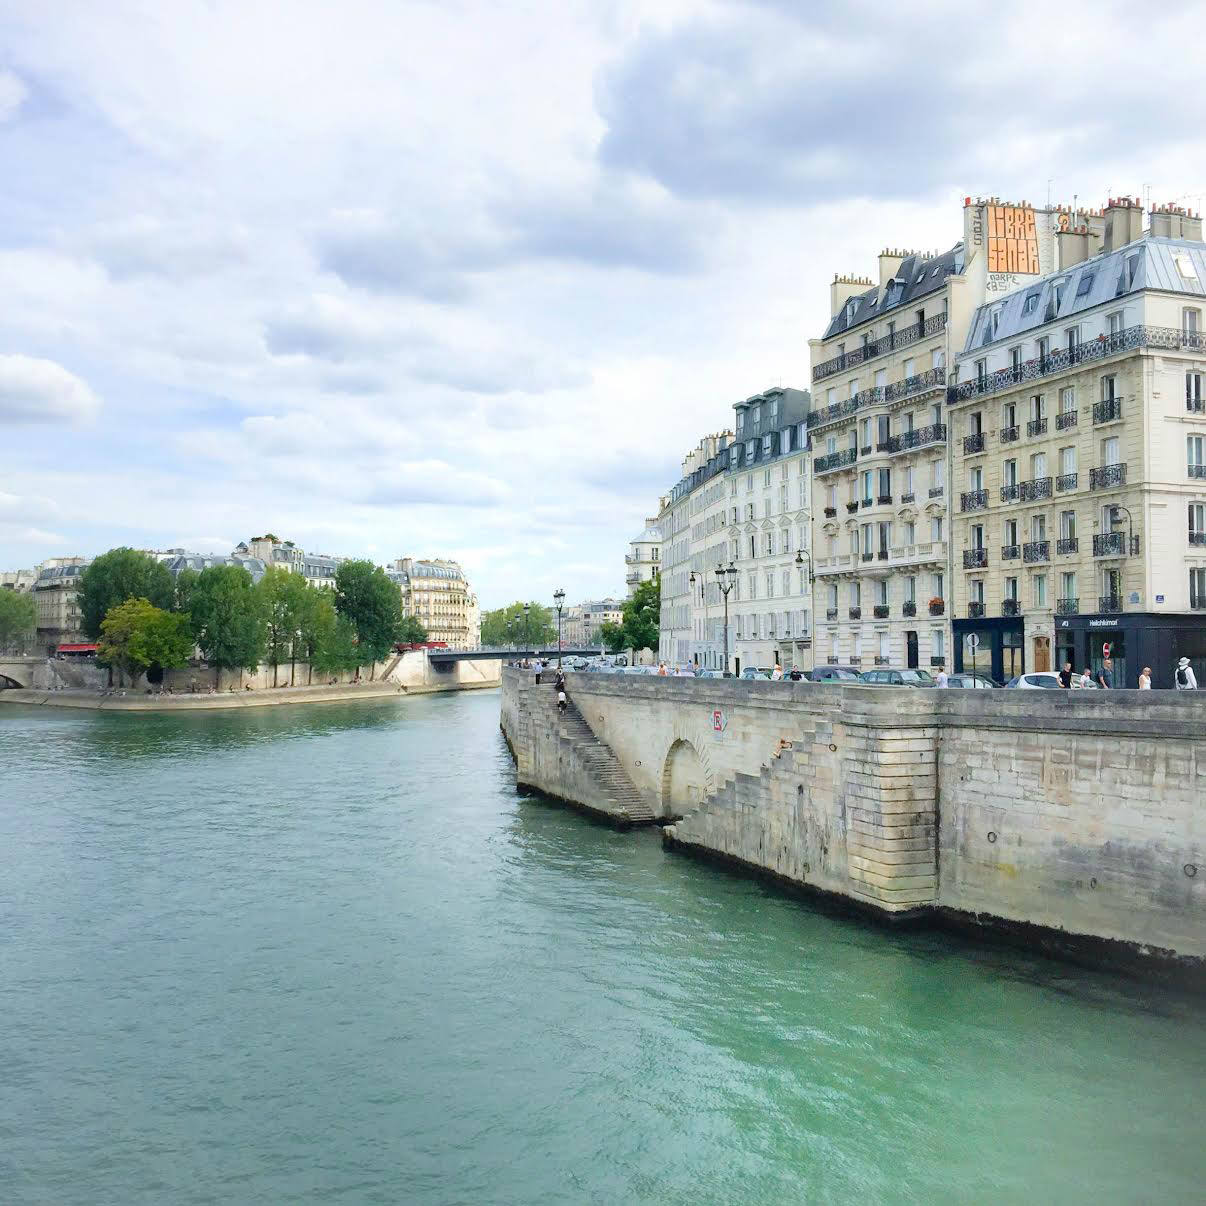 Blog-Mode-And-The-City-Lifestyle-5-petites-choses-142-bords-de-seine-paris-été